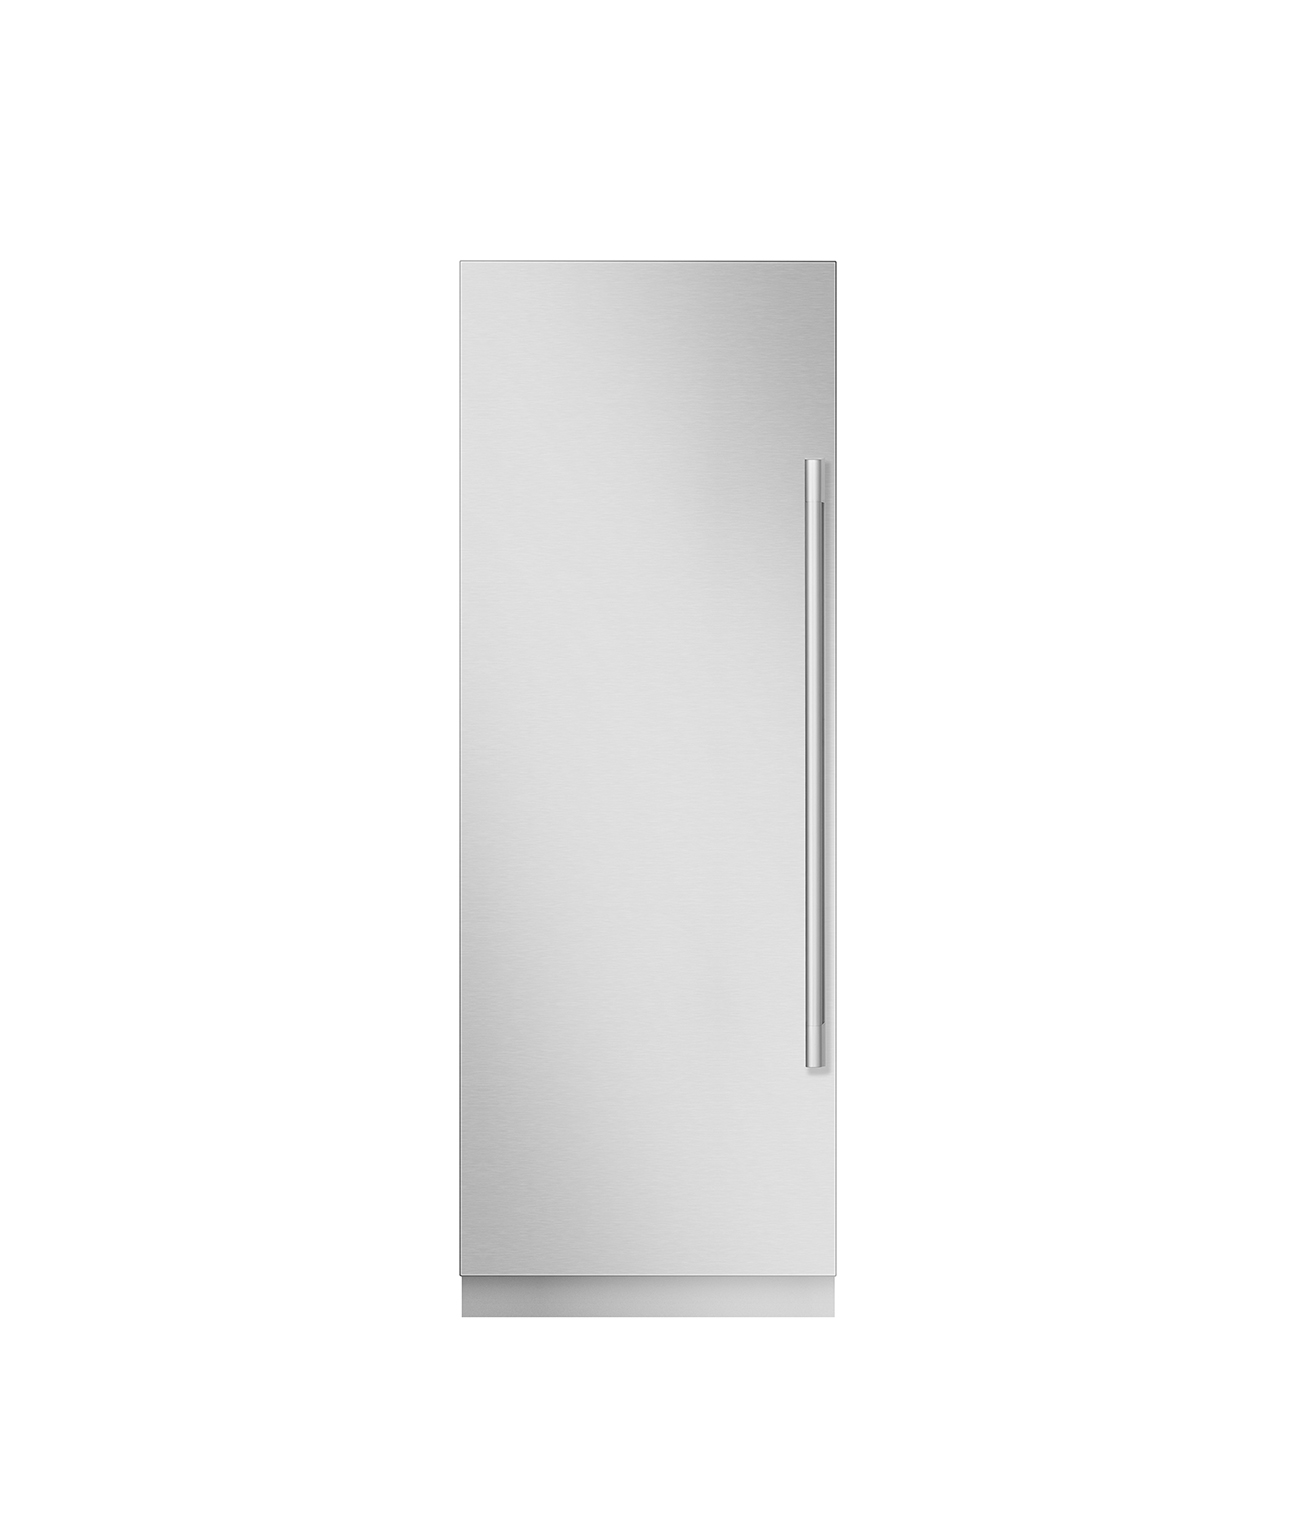 30-inch Integrated Column Freezer by Signature Kitchen Suite